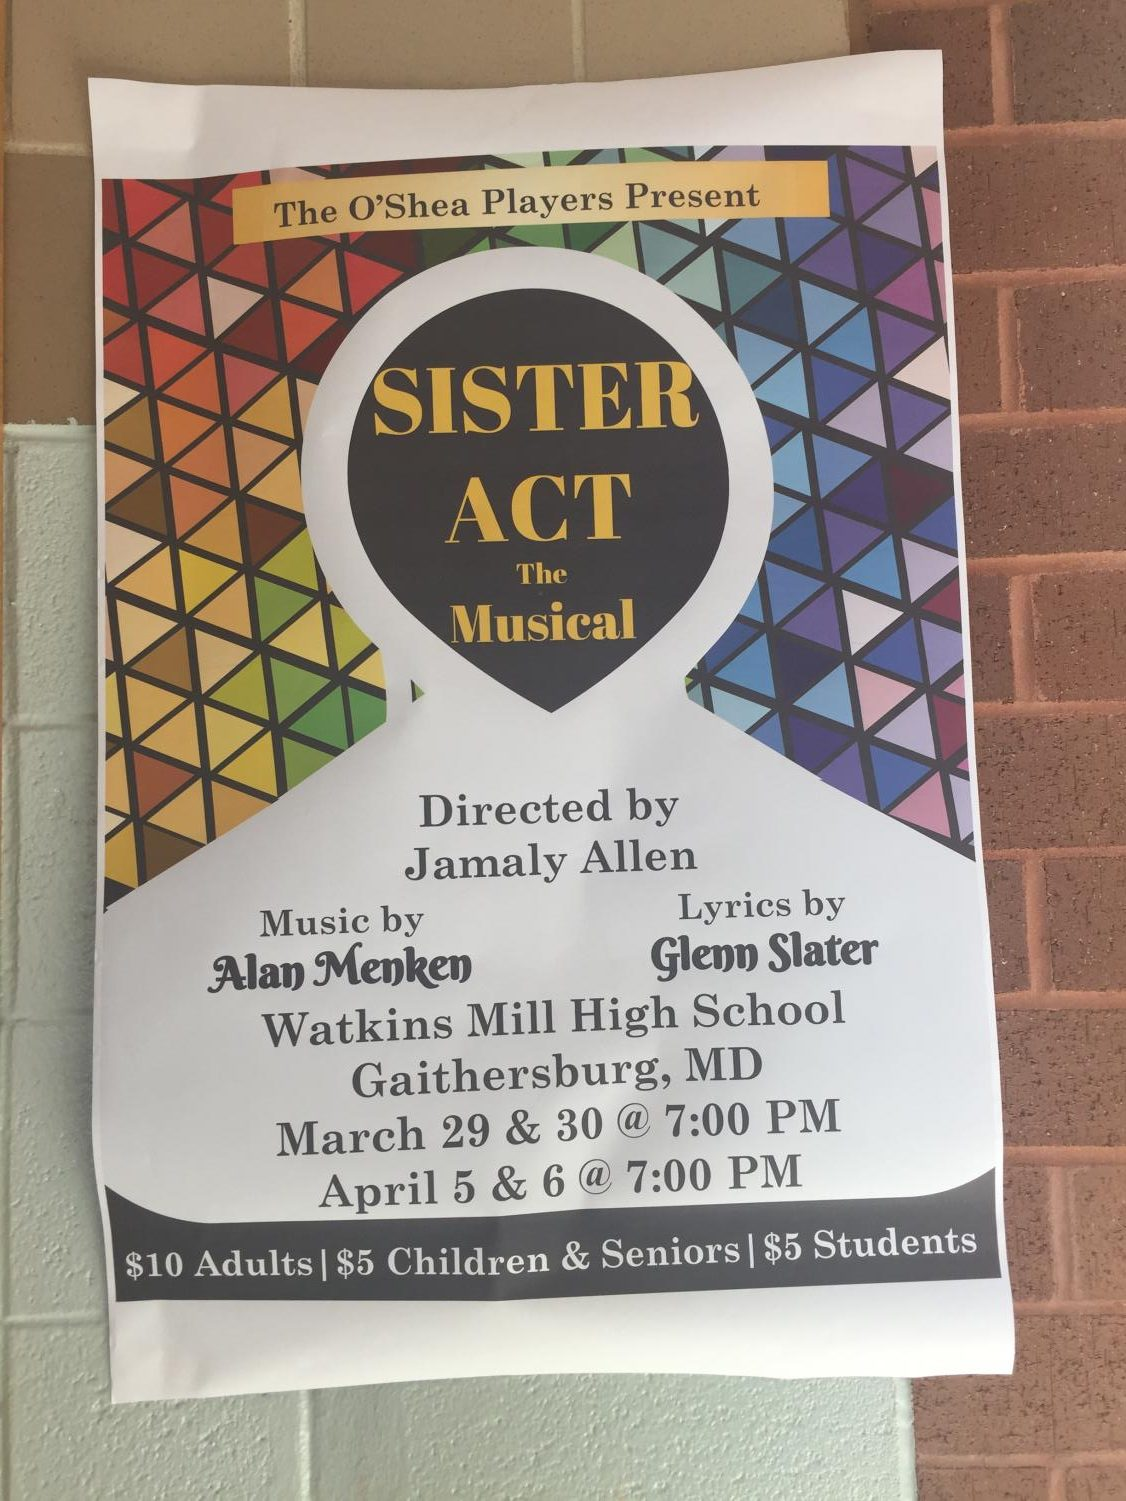 Sister Act: The Musical opens March 29 in the O'Shea Theatre at 7pm